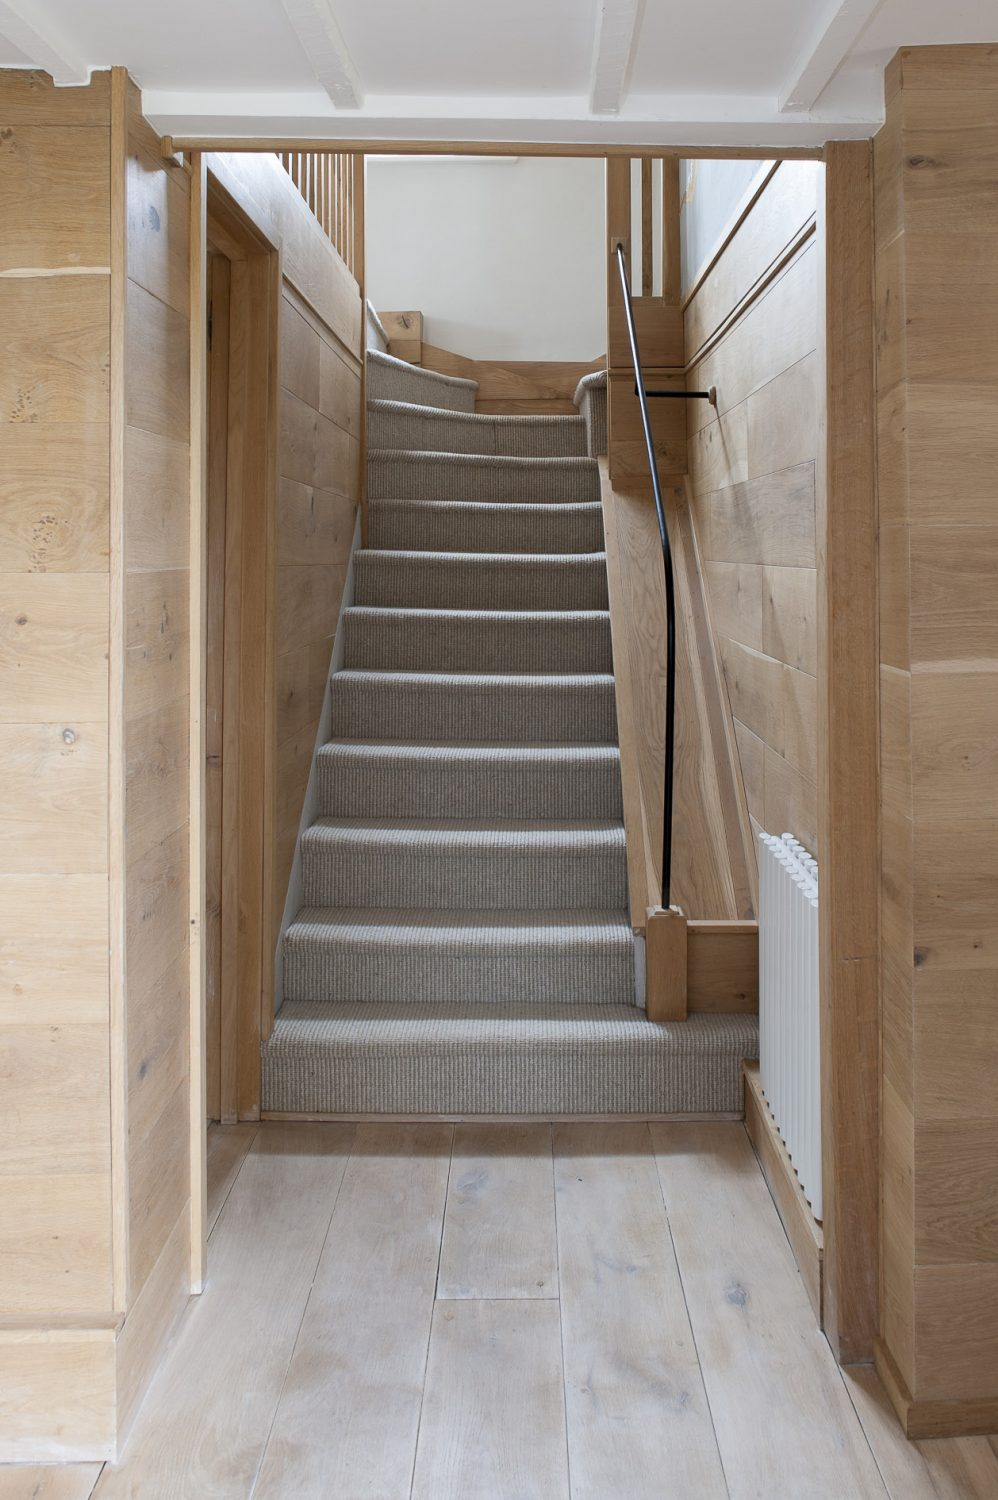 The understated, wood-lined stairway, with bespoke handrail designed by Andrew, gives a taste of the chalet style upstairs